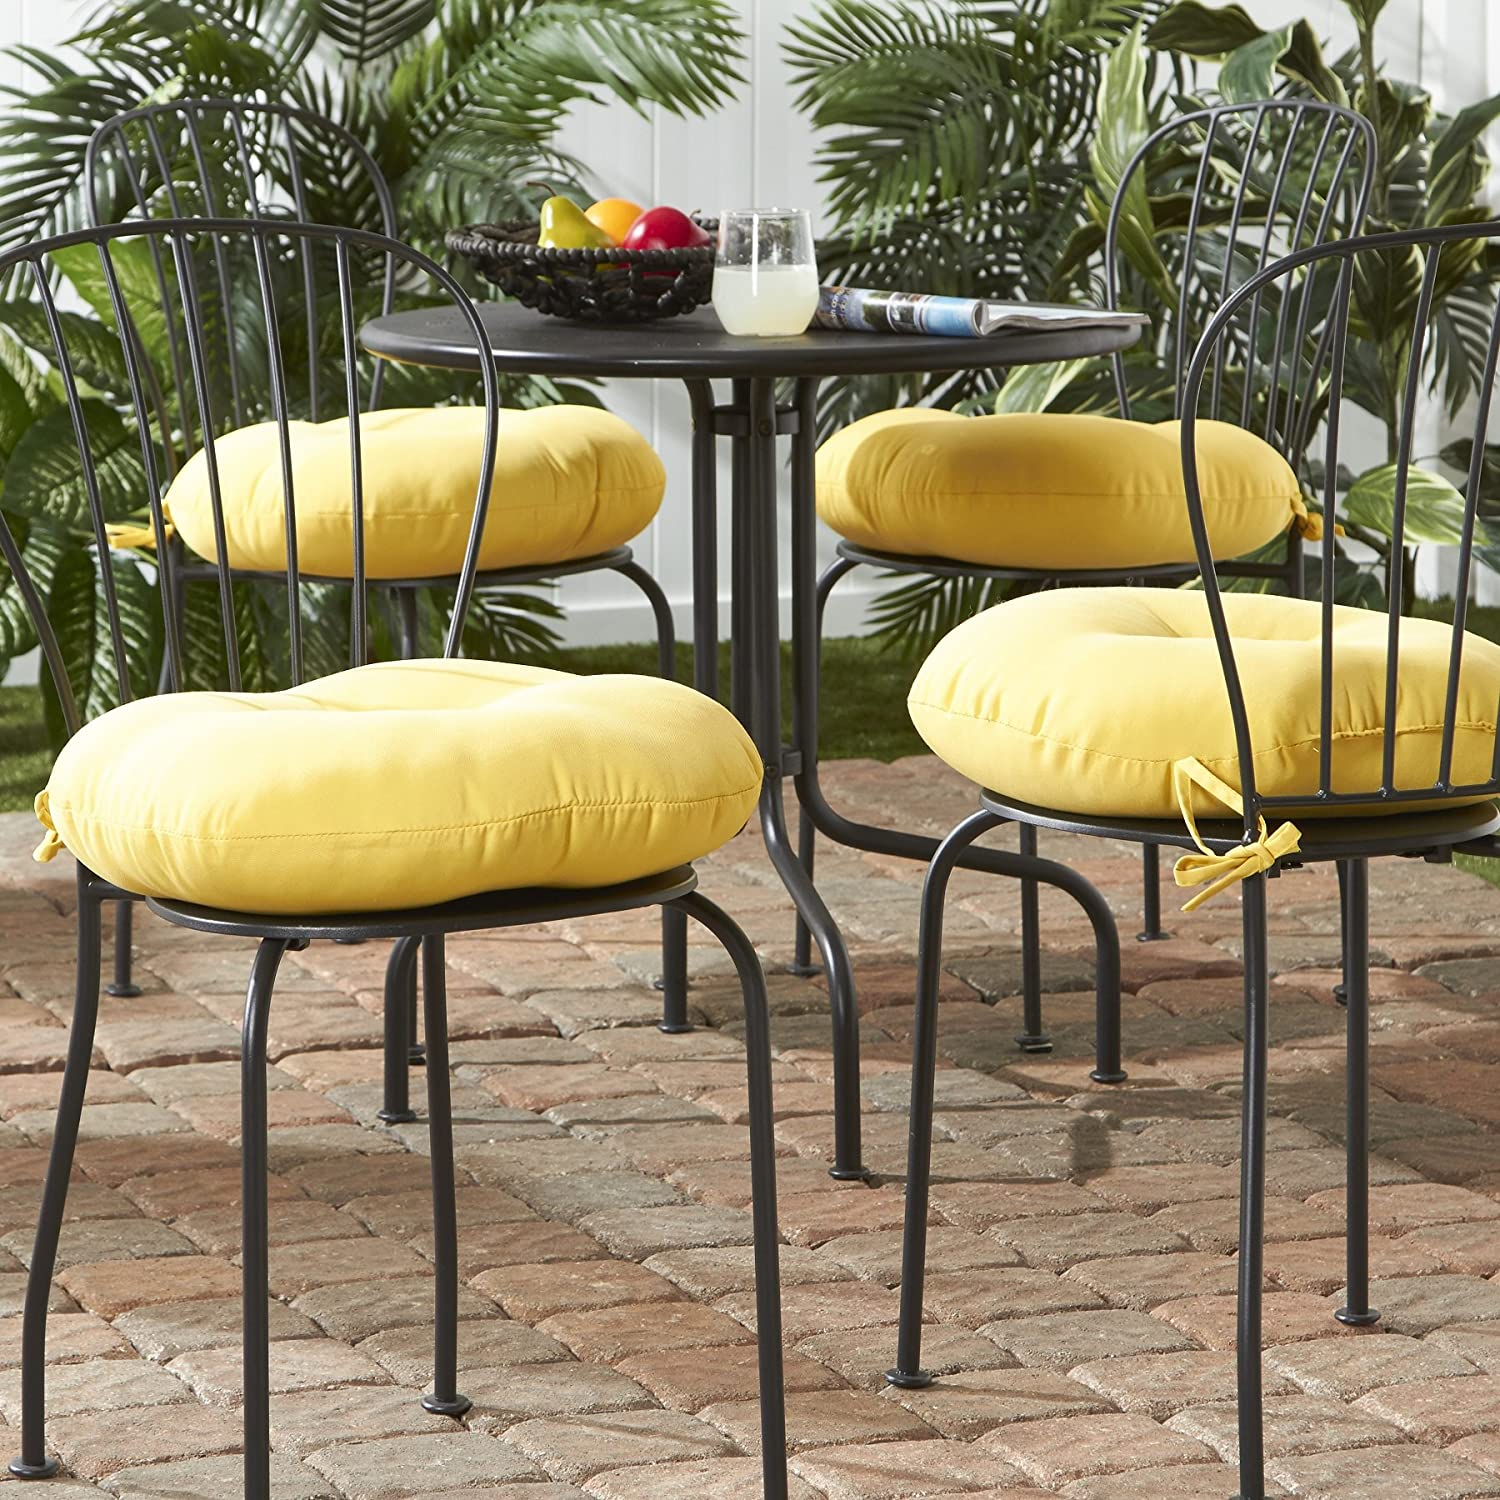 Greendale Home Fashions 18 in. Round Outdoor Bistro Chair Cushion set of 4 , Sunbeam